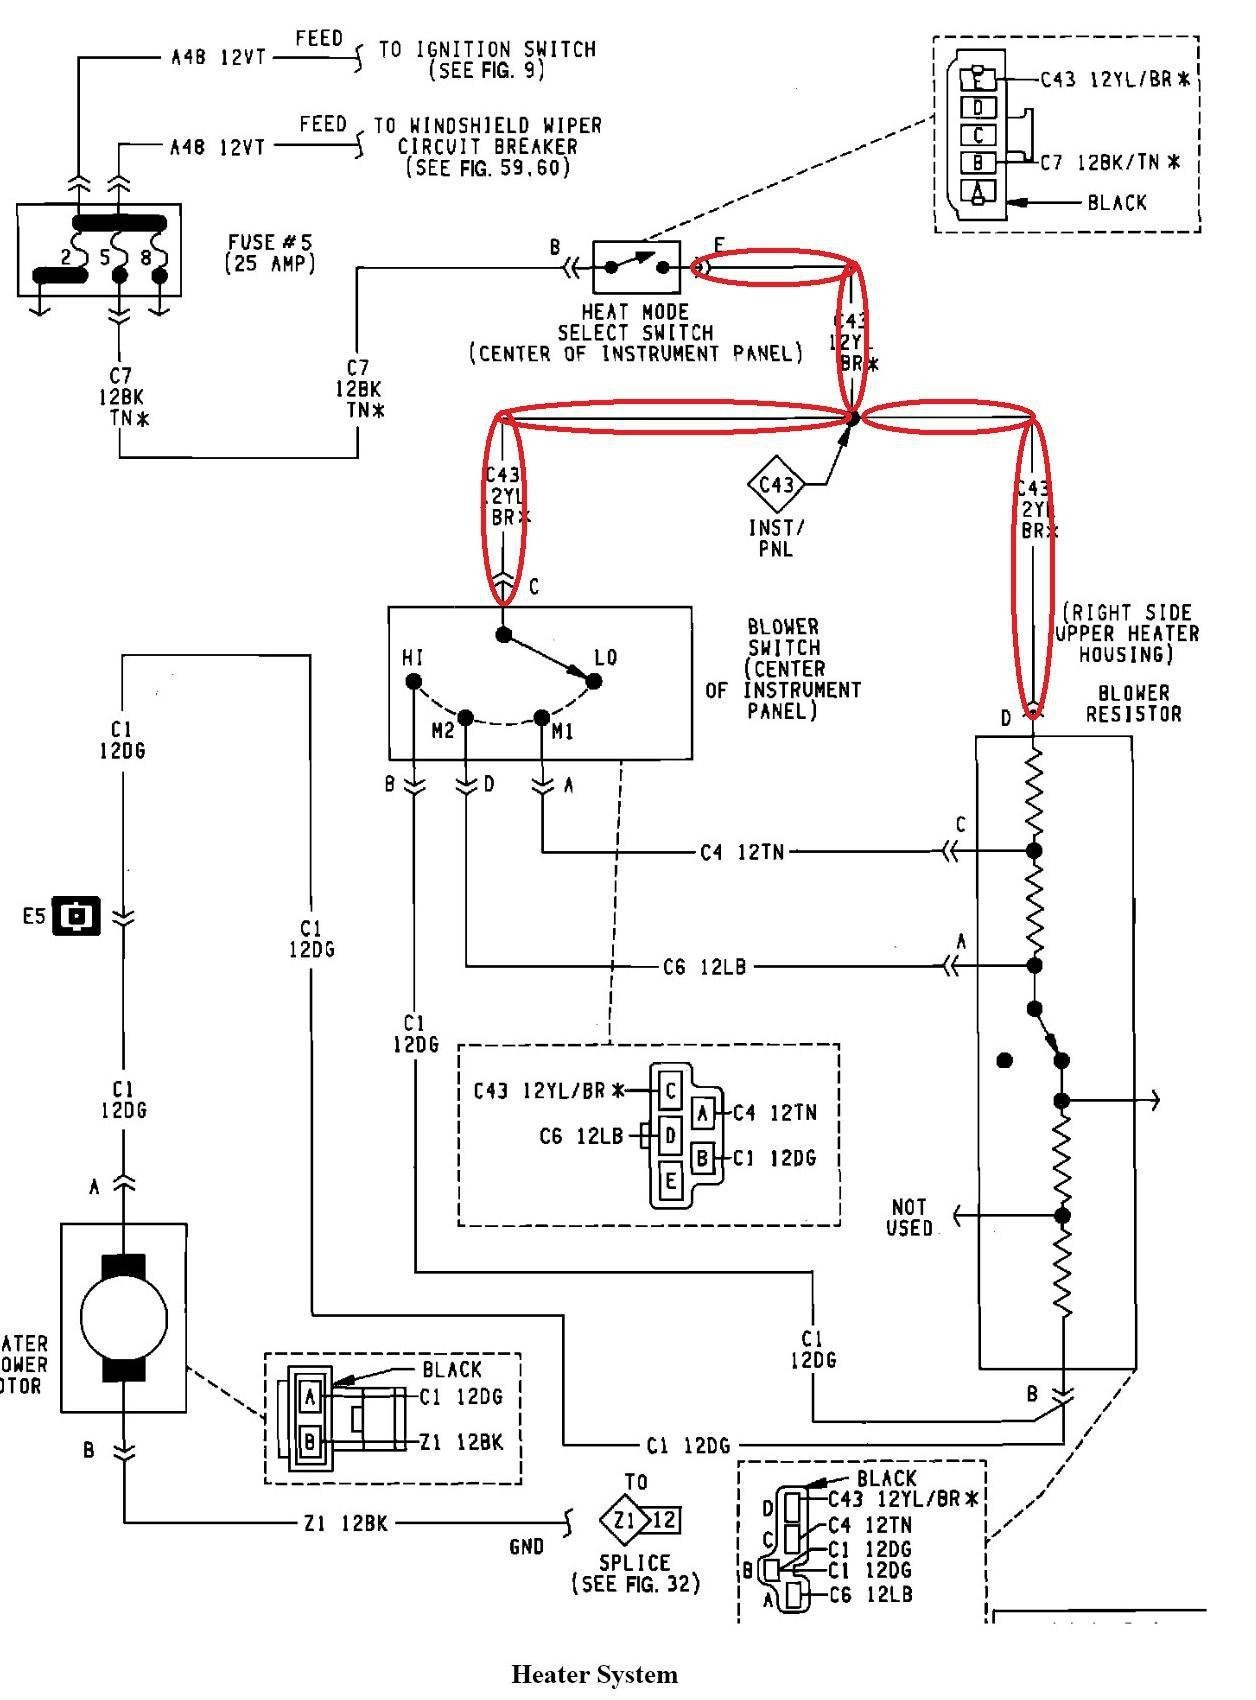 Ez Go Wiring Schematic - Wiring Diagram & Cable Management G Core Club Car Precedent Wiring Diagram on